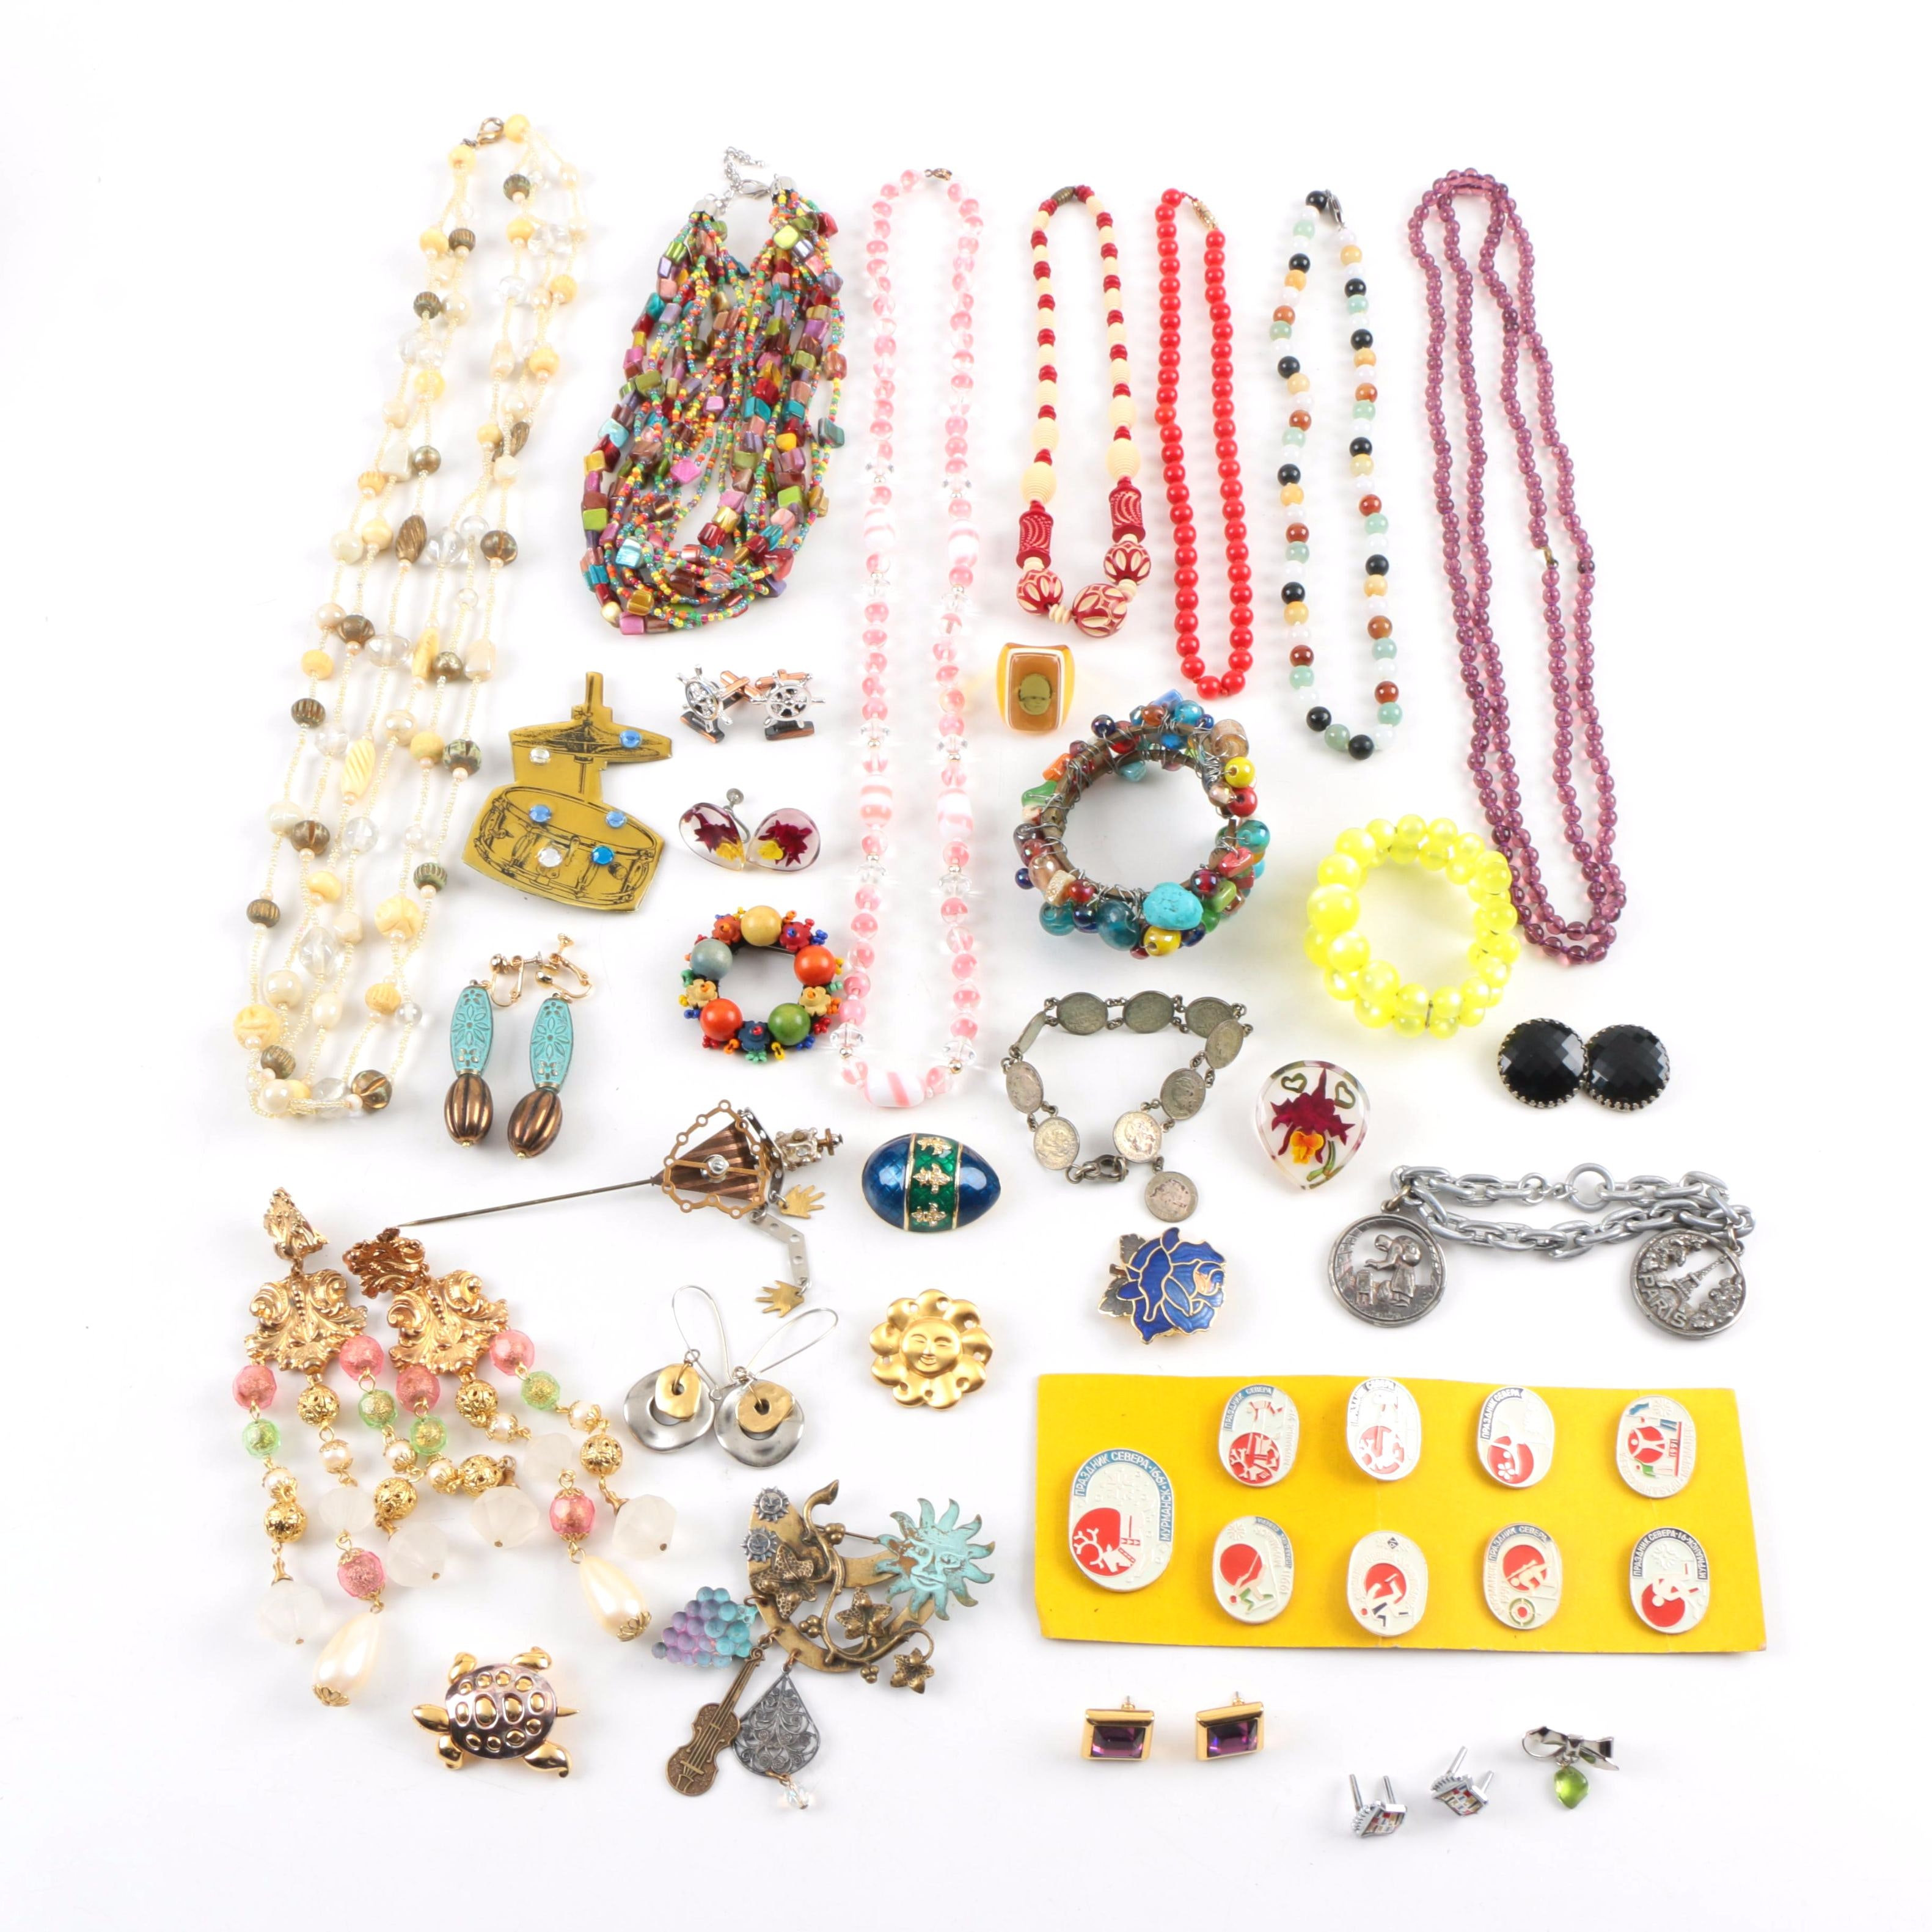 Generous Assortment of Colorful Costume Jewelry